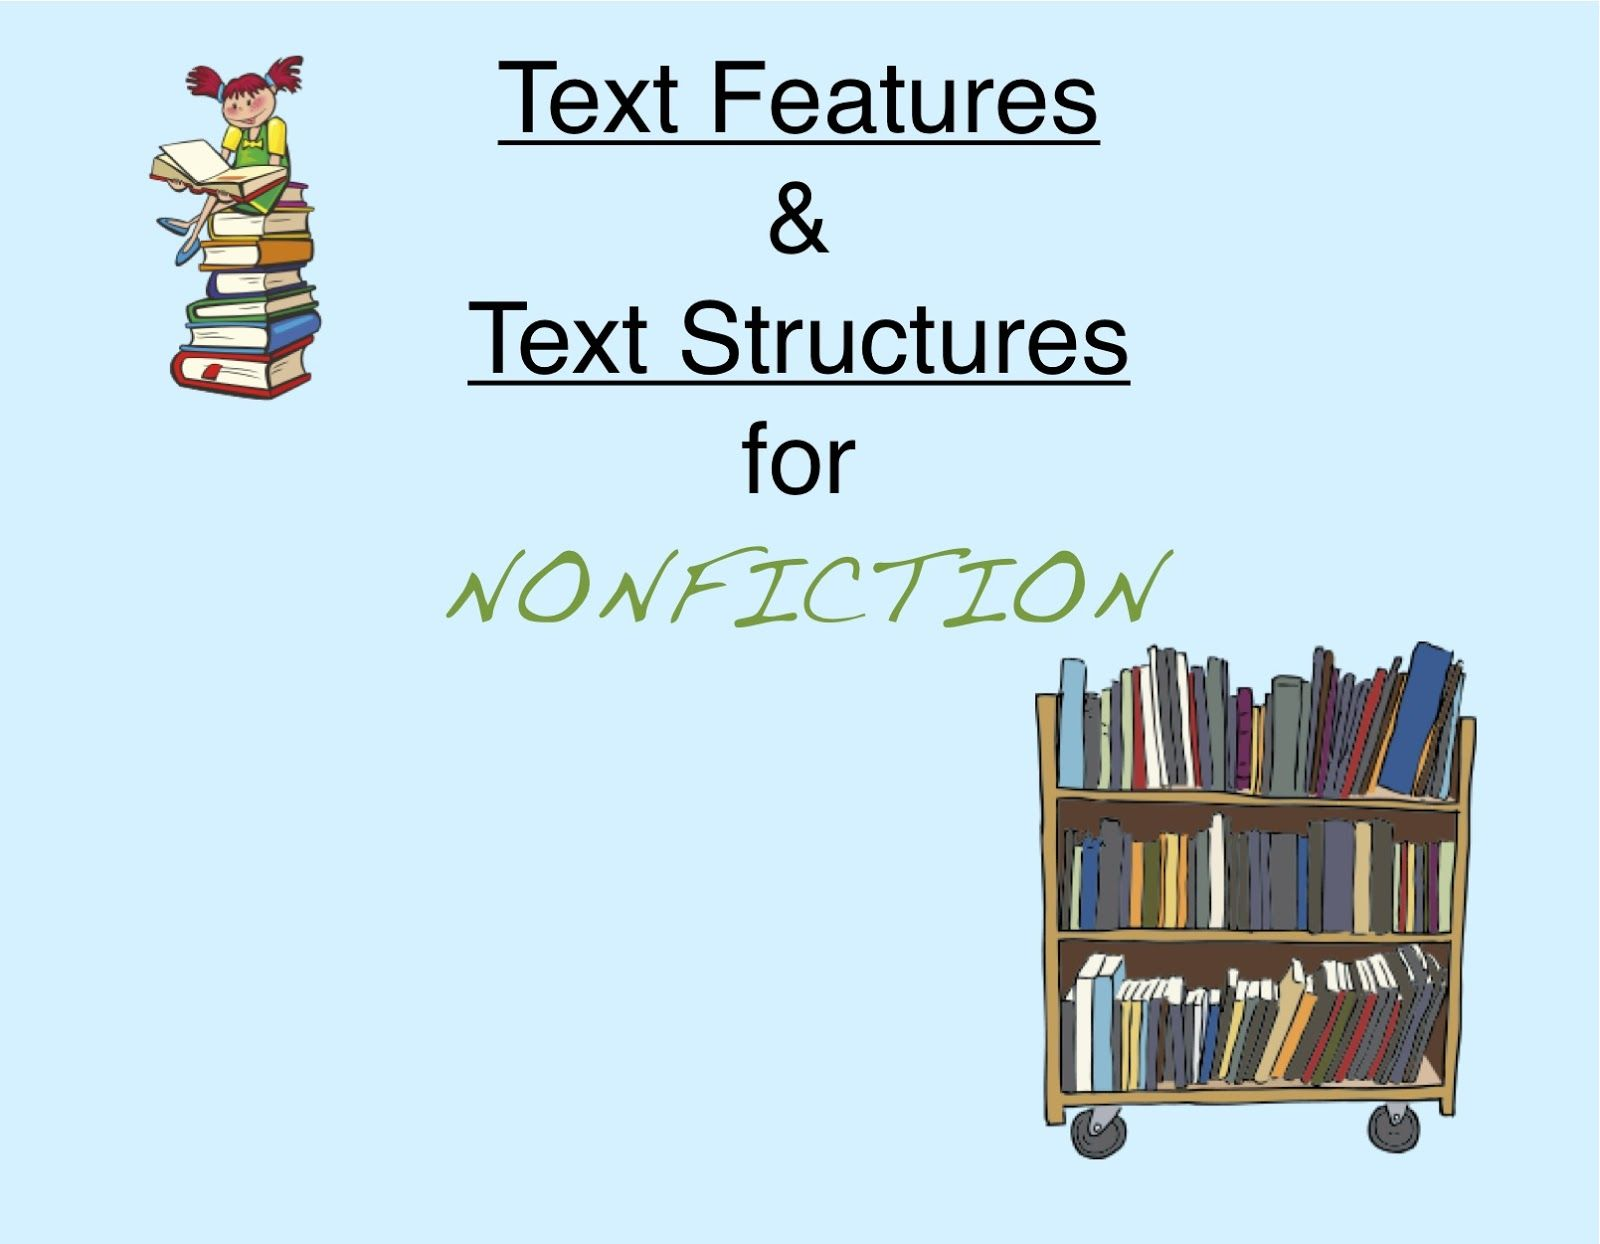 Teach Students About Common Text Features For Nonfiction